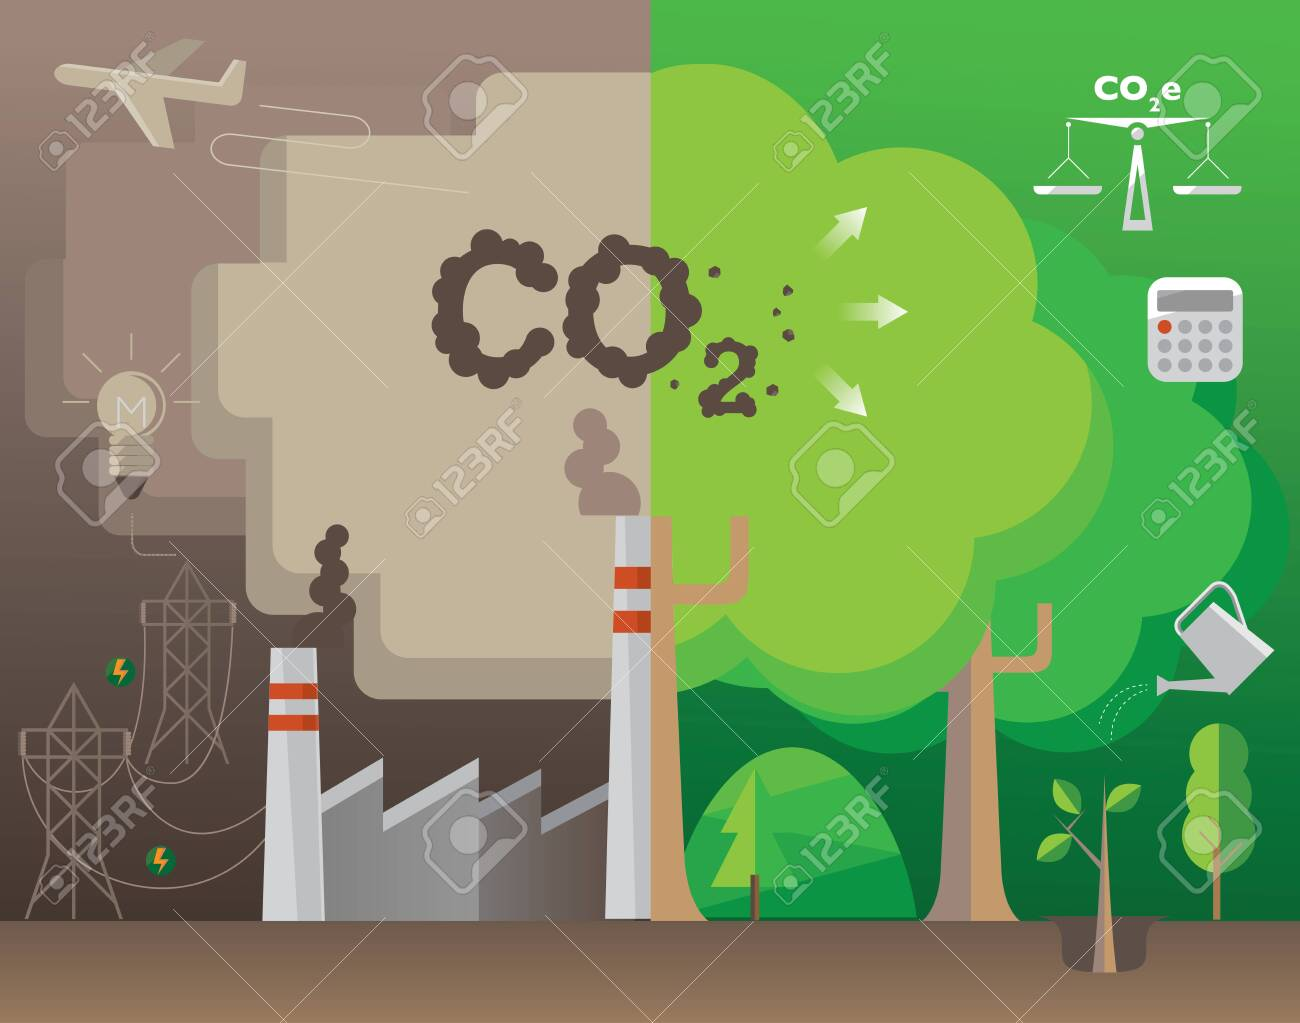 Infographic of Carbon Offset concept: Planting of trees to absorb CO2 in compensation of same amount produced. - 124045676